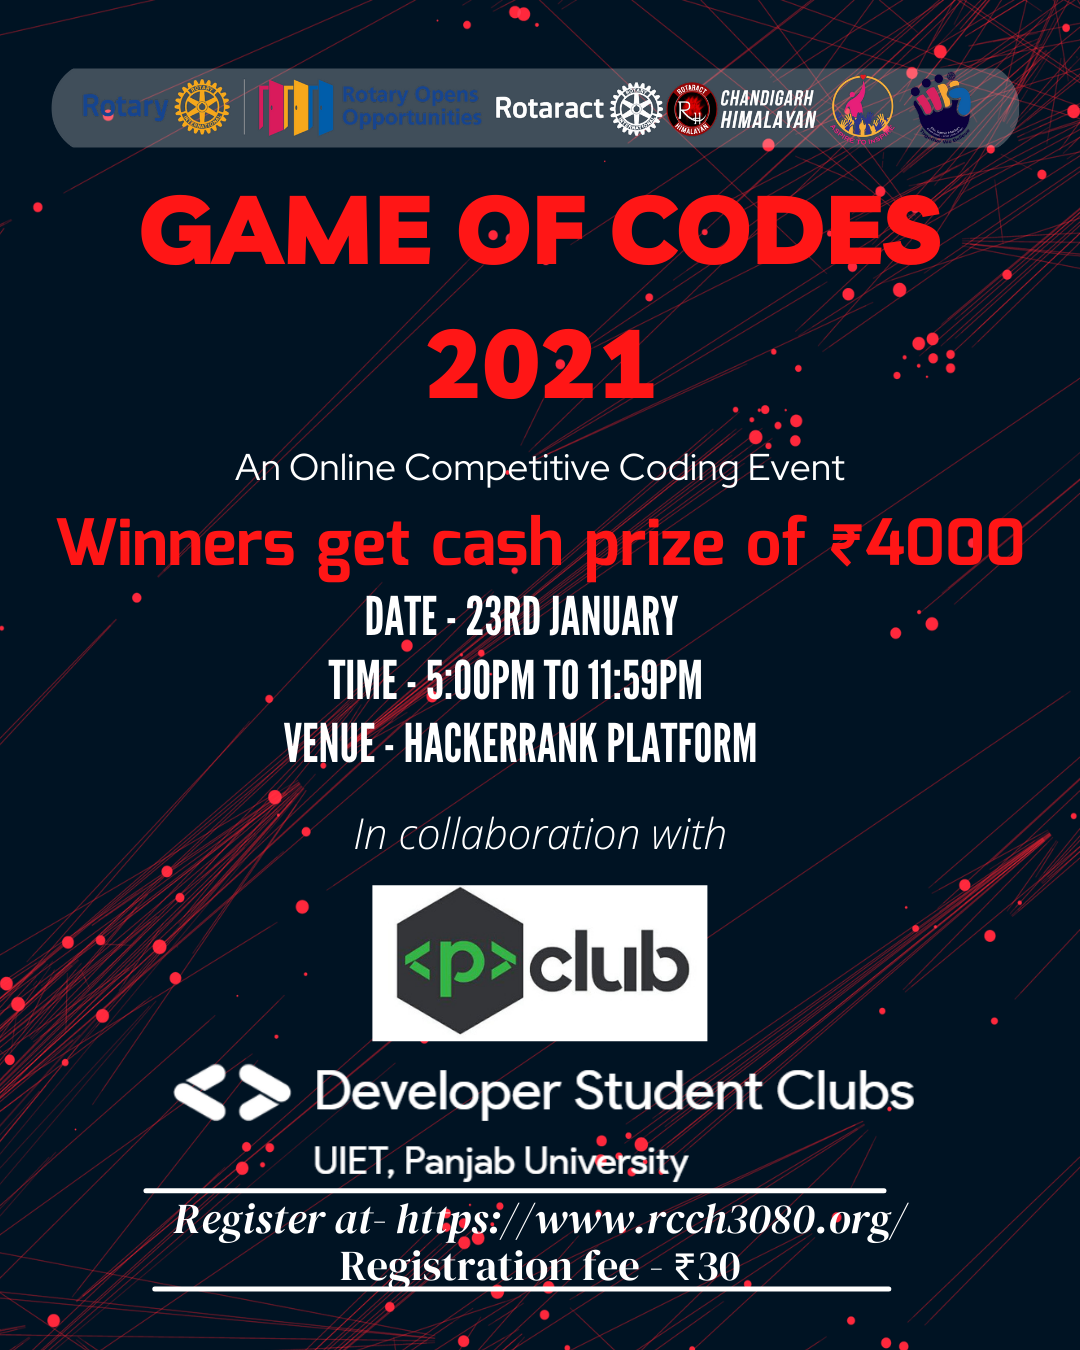 GAMES OF CODES 2021